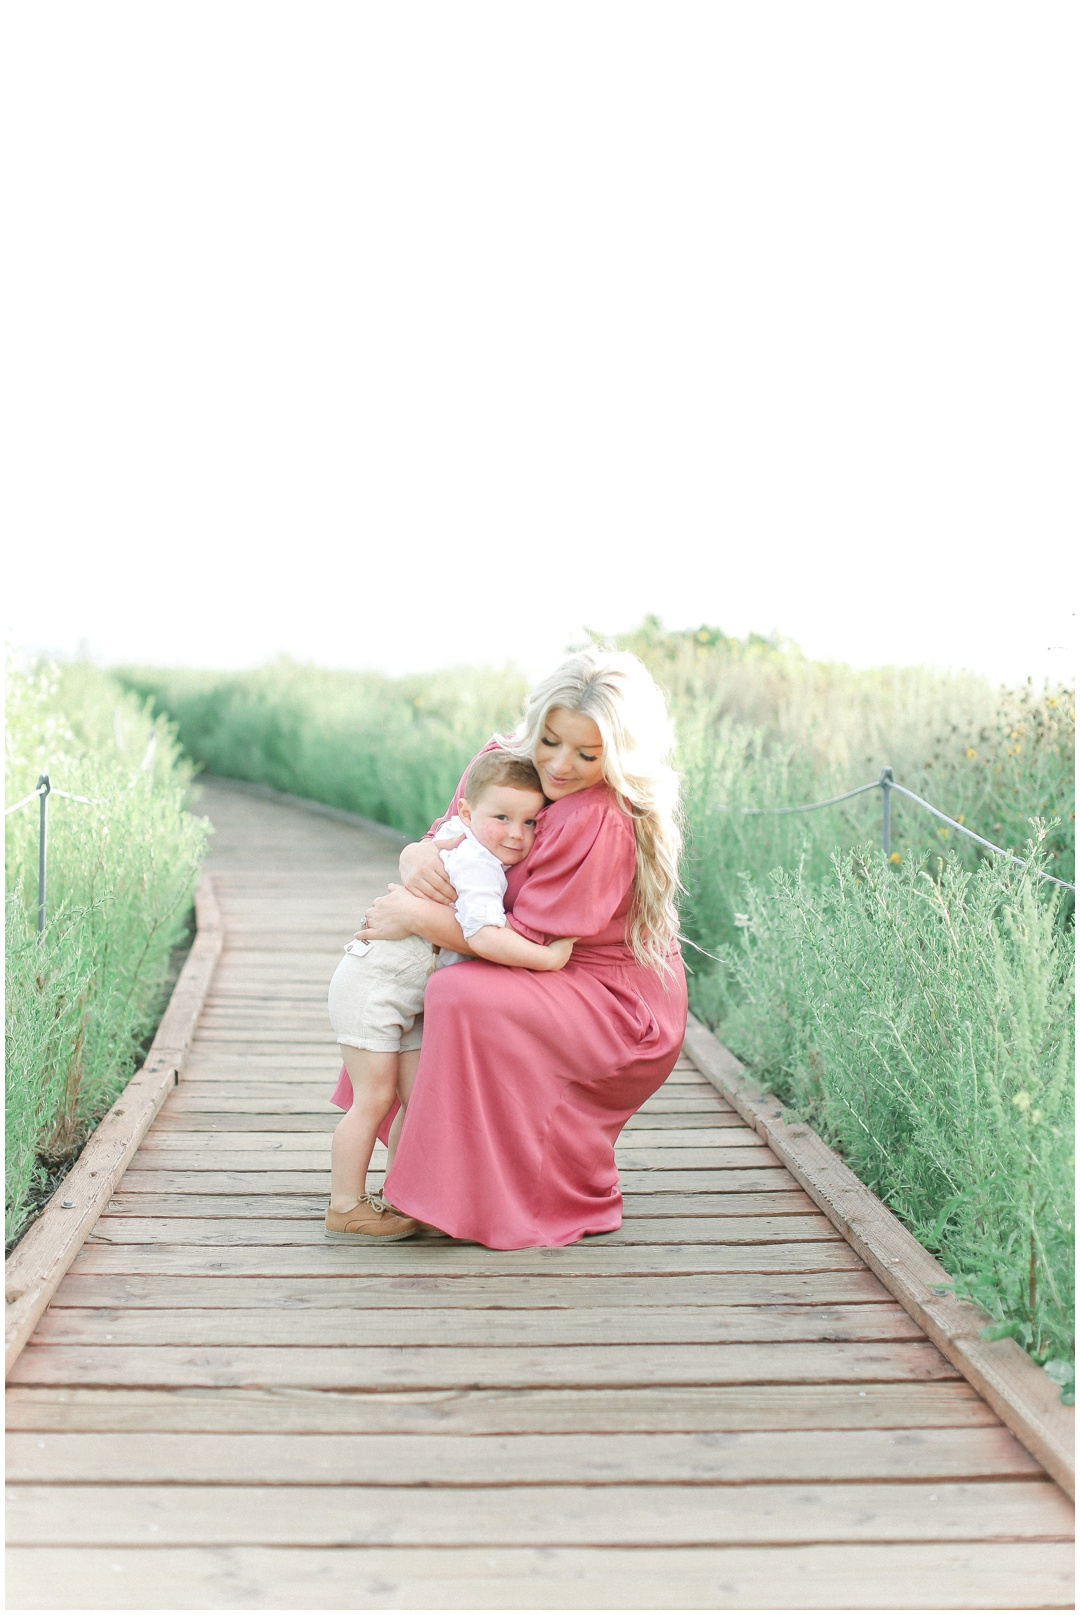 Newport_Beach_Newborn_Light_Airy_Natural_Photographer_Newport_Beach_Photographer_Orange_County_Family_Photographer_Cori_Kleckner_Photography_Newport_Beach_Photographer_Maternity_kole_calhoun56_kole_calhoun_Jennifer_Calhoun_Knox_Calhoun_3737.jpg